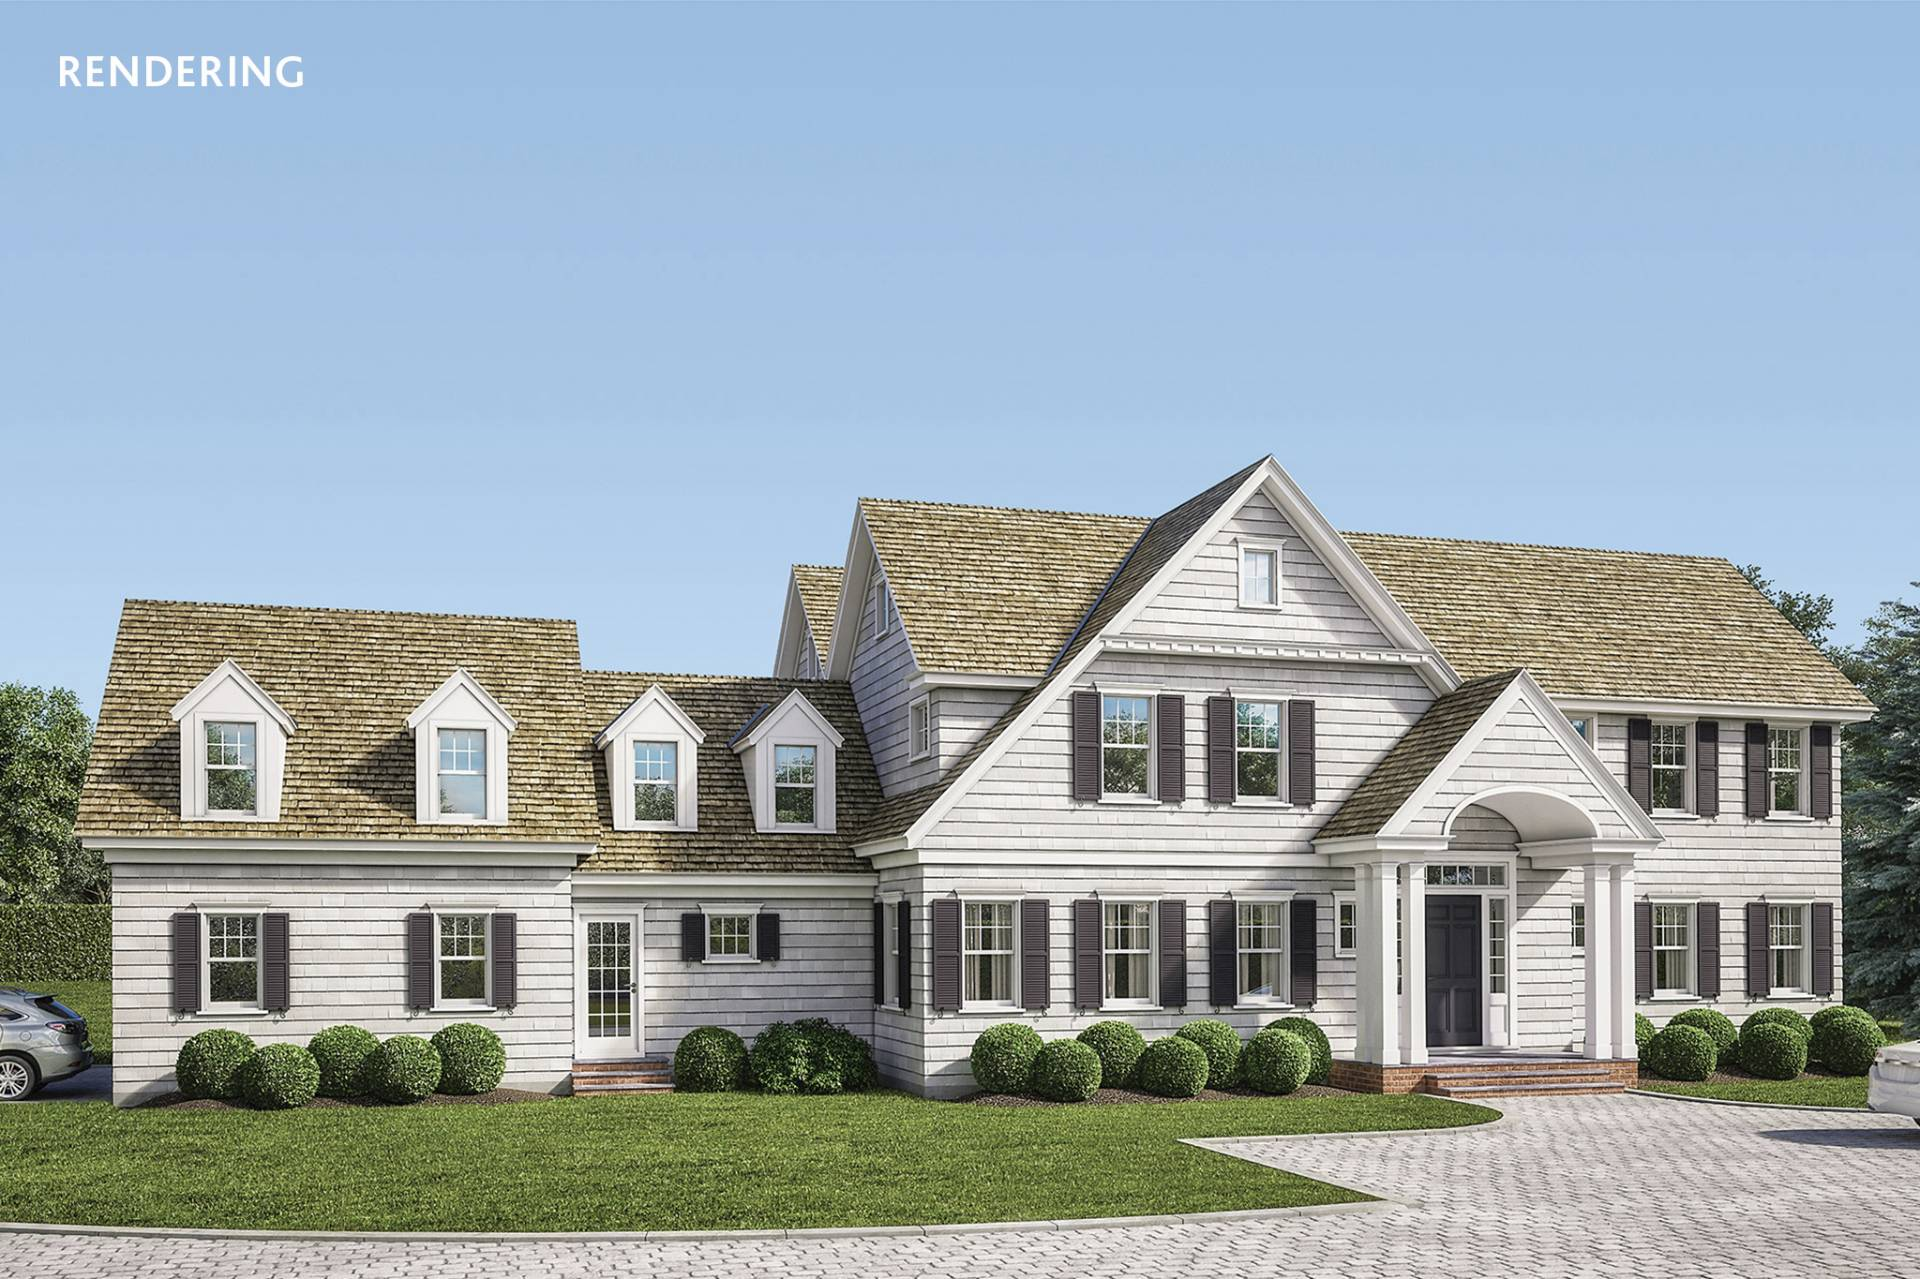 Single Family Home for Sale at Flying Point New Construction 71 Flying Point Road, Southampton, New York